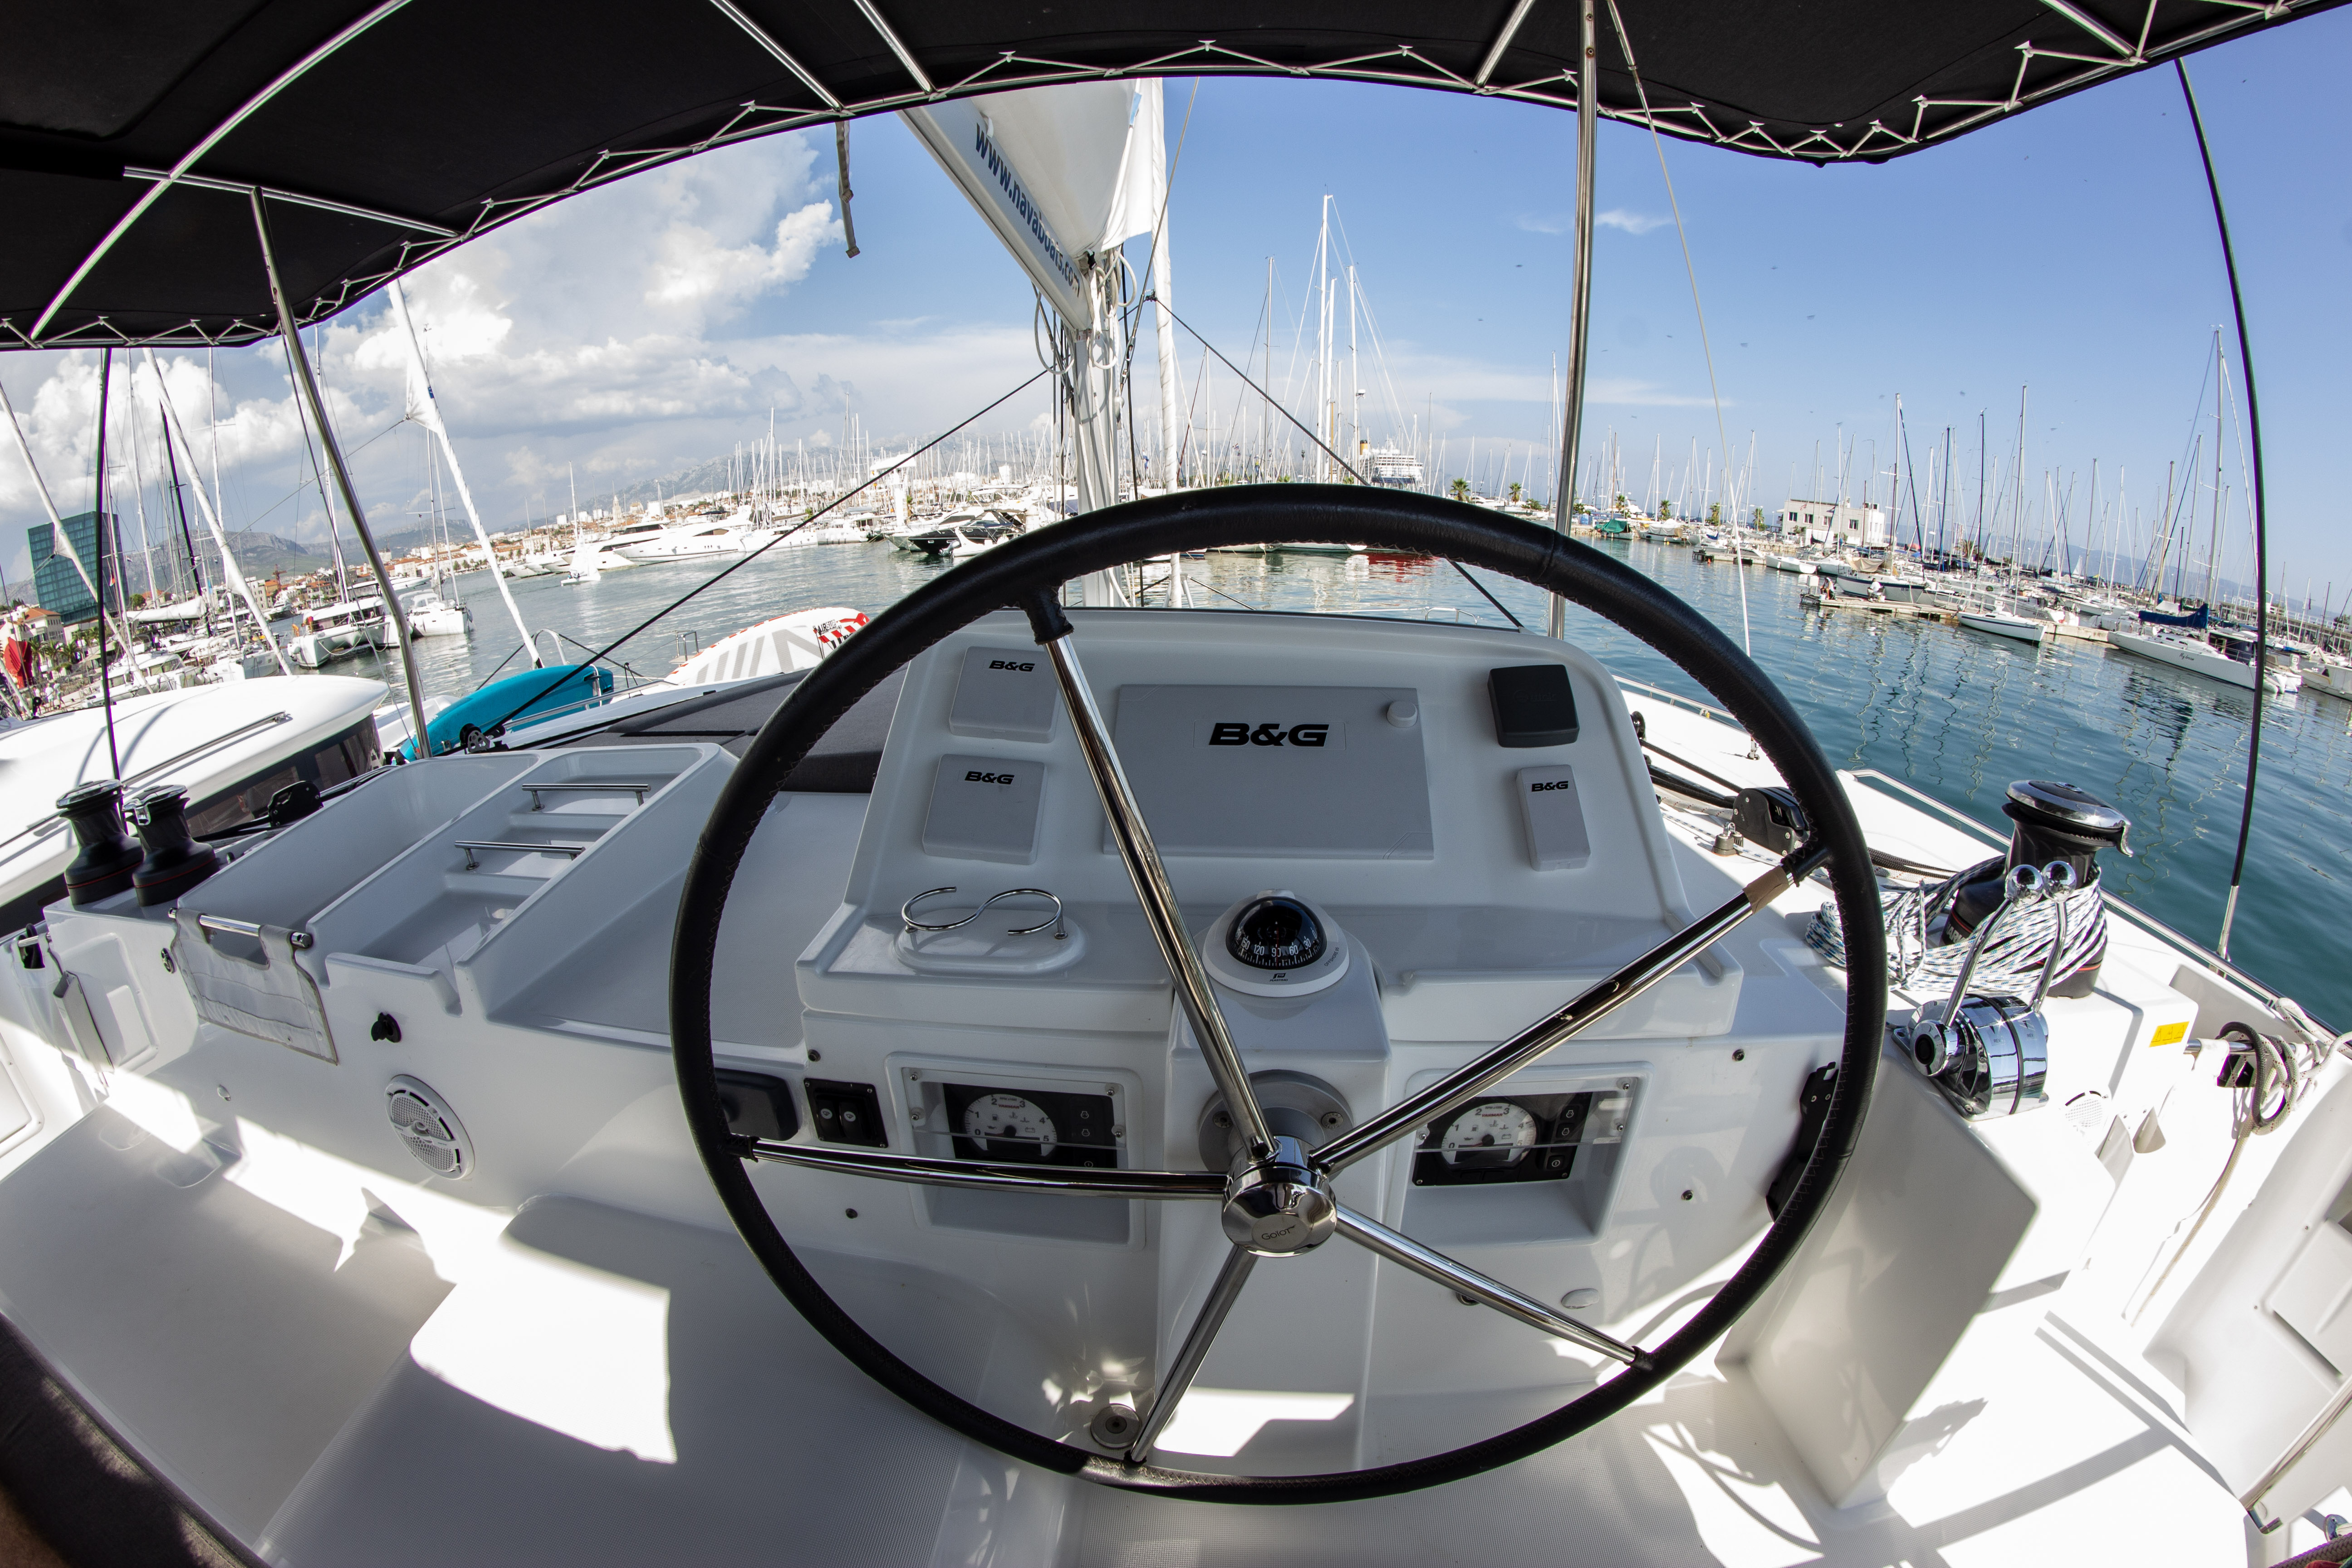 Lagoon 450 (2016) equipped with generator, A/C (sa (SMILE I)  - 19